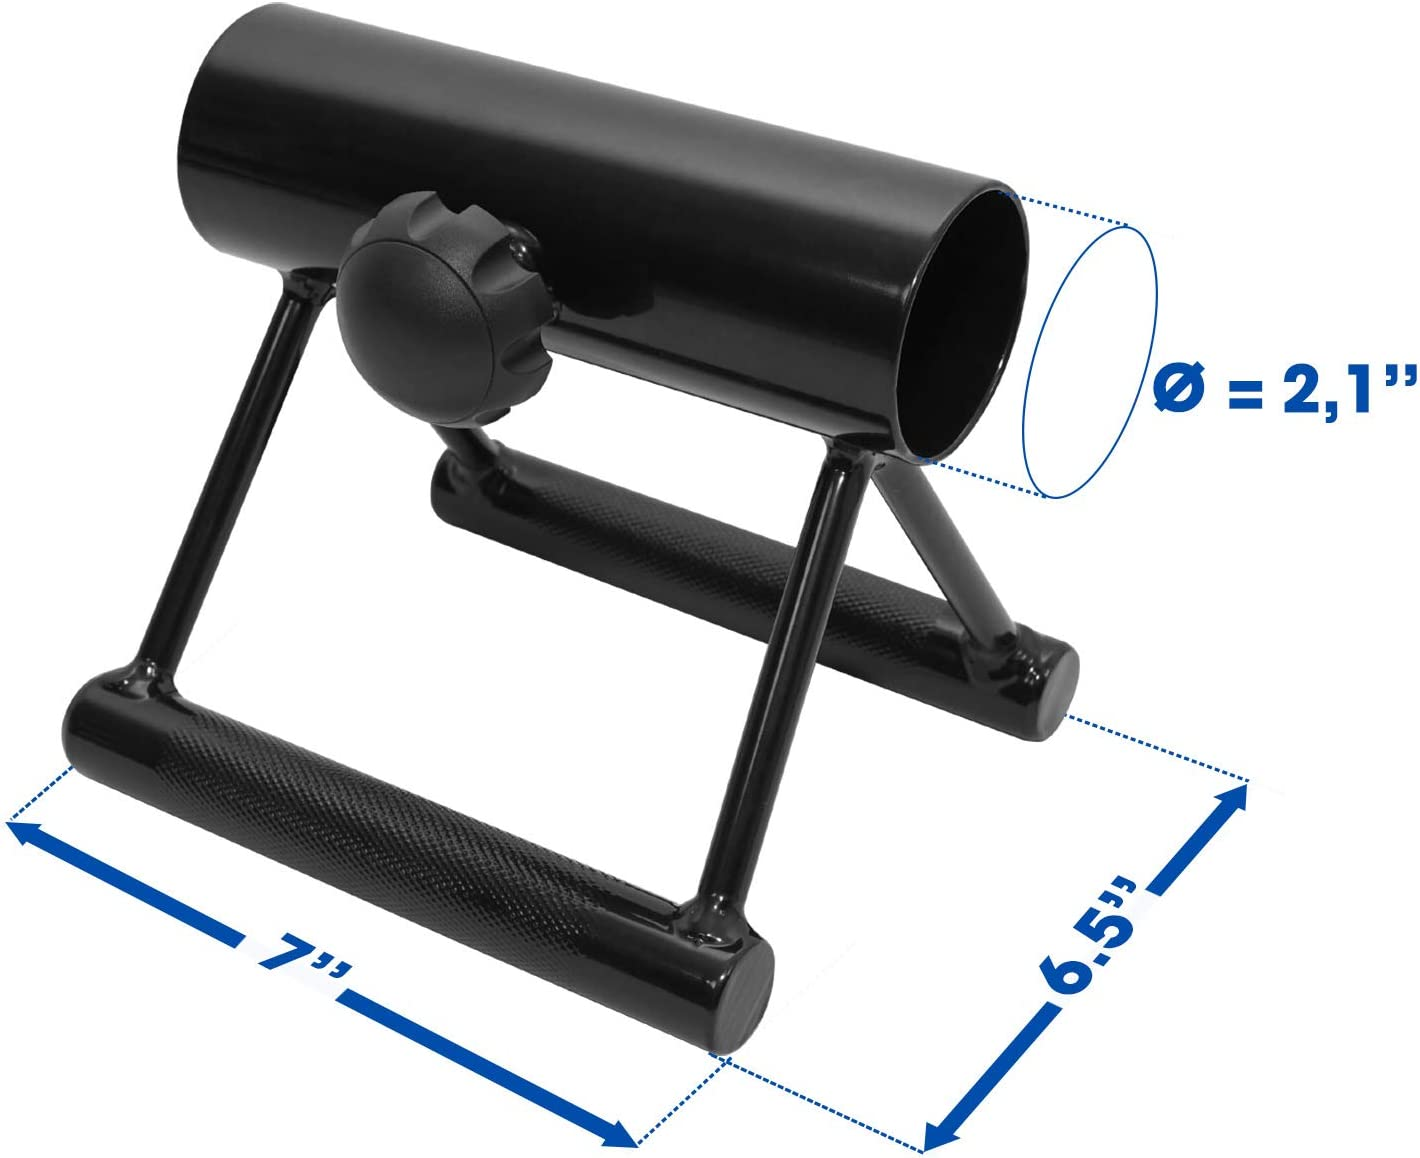 Double D Landmine Handle Fits 2-inch Olympic Bars Yes4All Landmine Double D Row Handle//Landmine Handle Attachment with Non Slip Handles